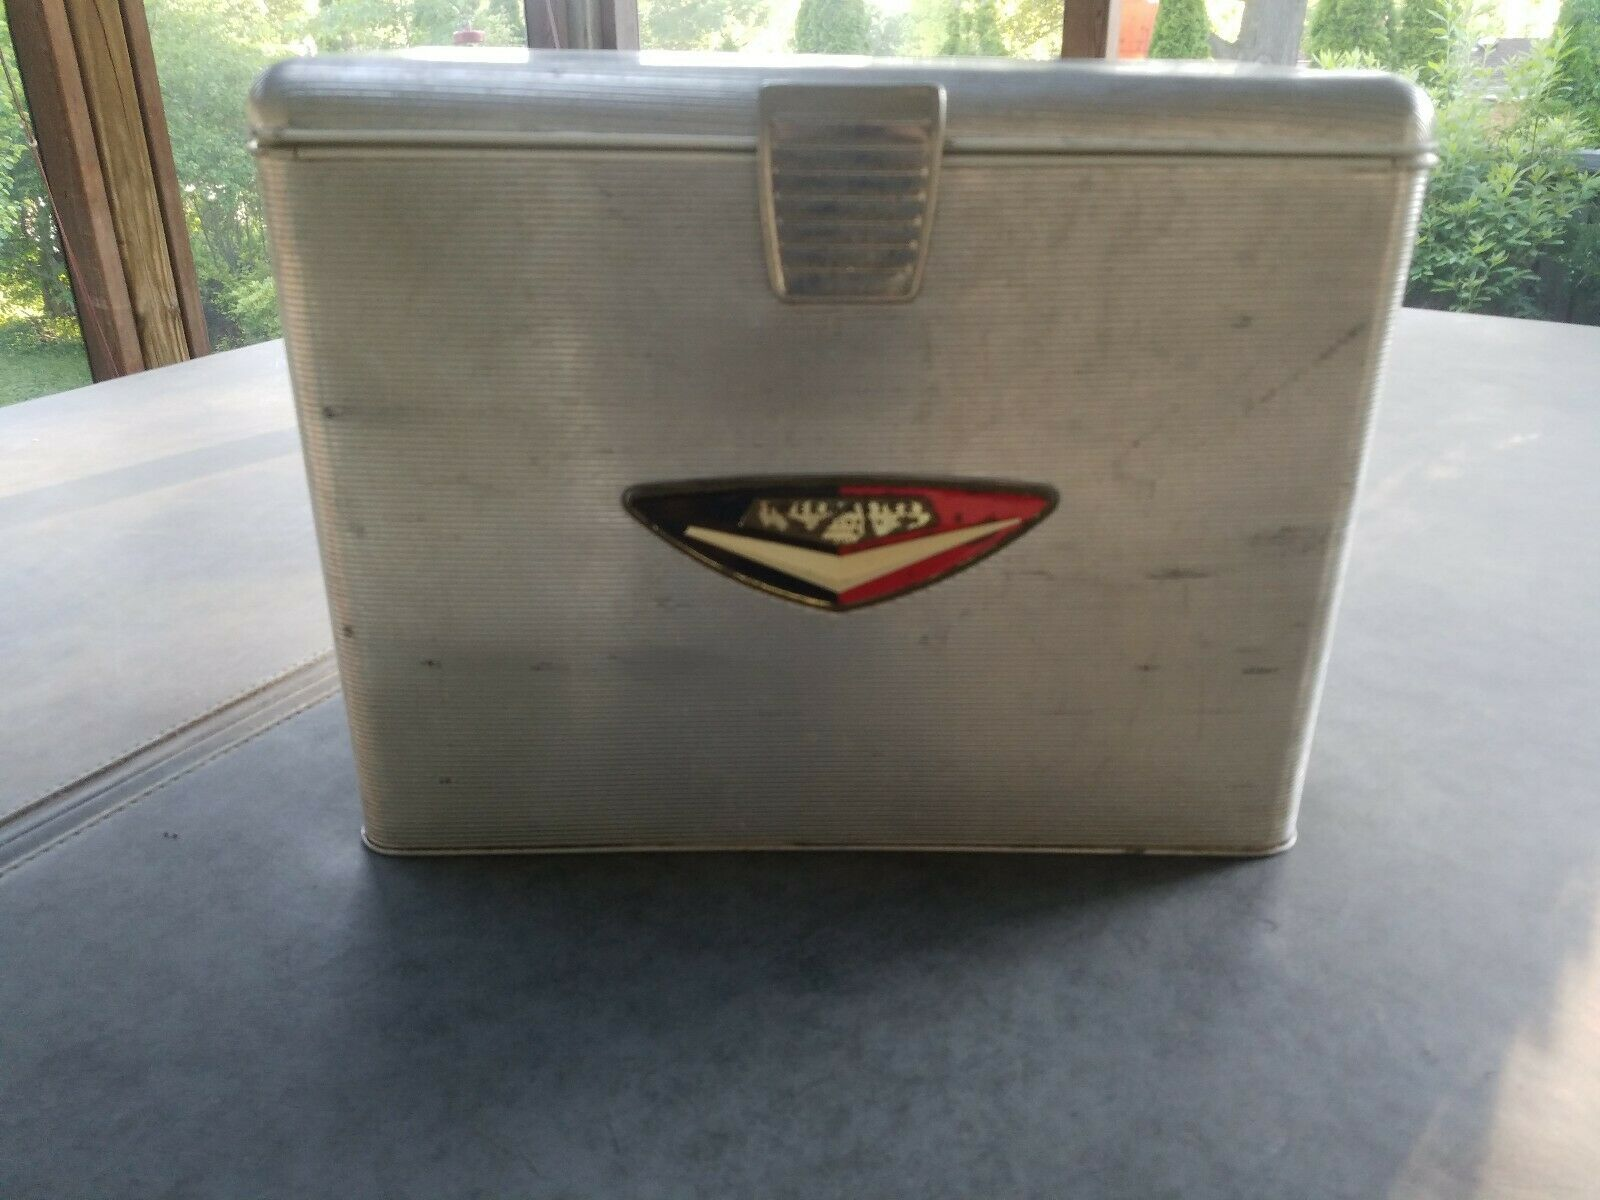 Polgoldn Thermaster All-Ribbed Aluminum  Cooler  Excellent Vintage Condition  everyday low prices